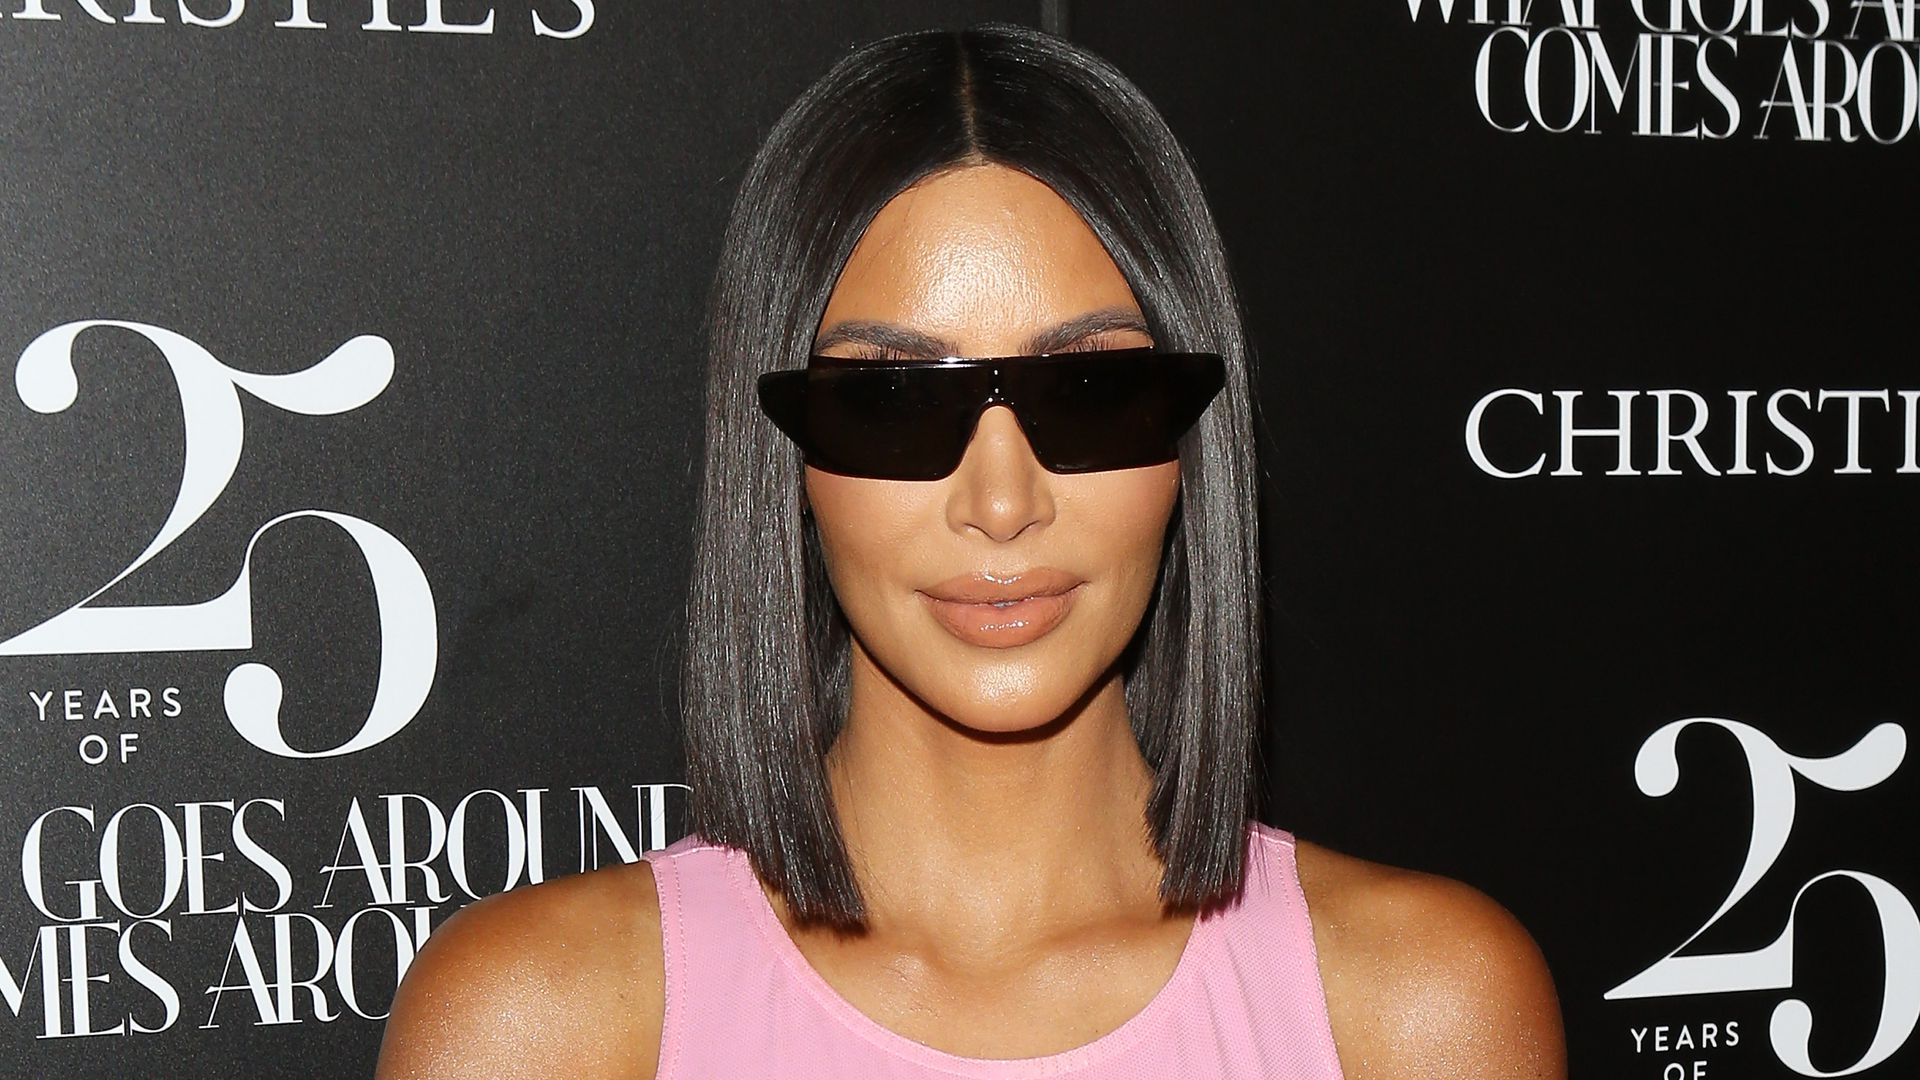 Kim Kardashian where rectangular, dark sunglasses and a light pink tank top posing for a photo seemingly on a red carpet